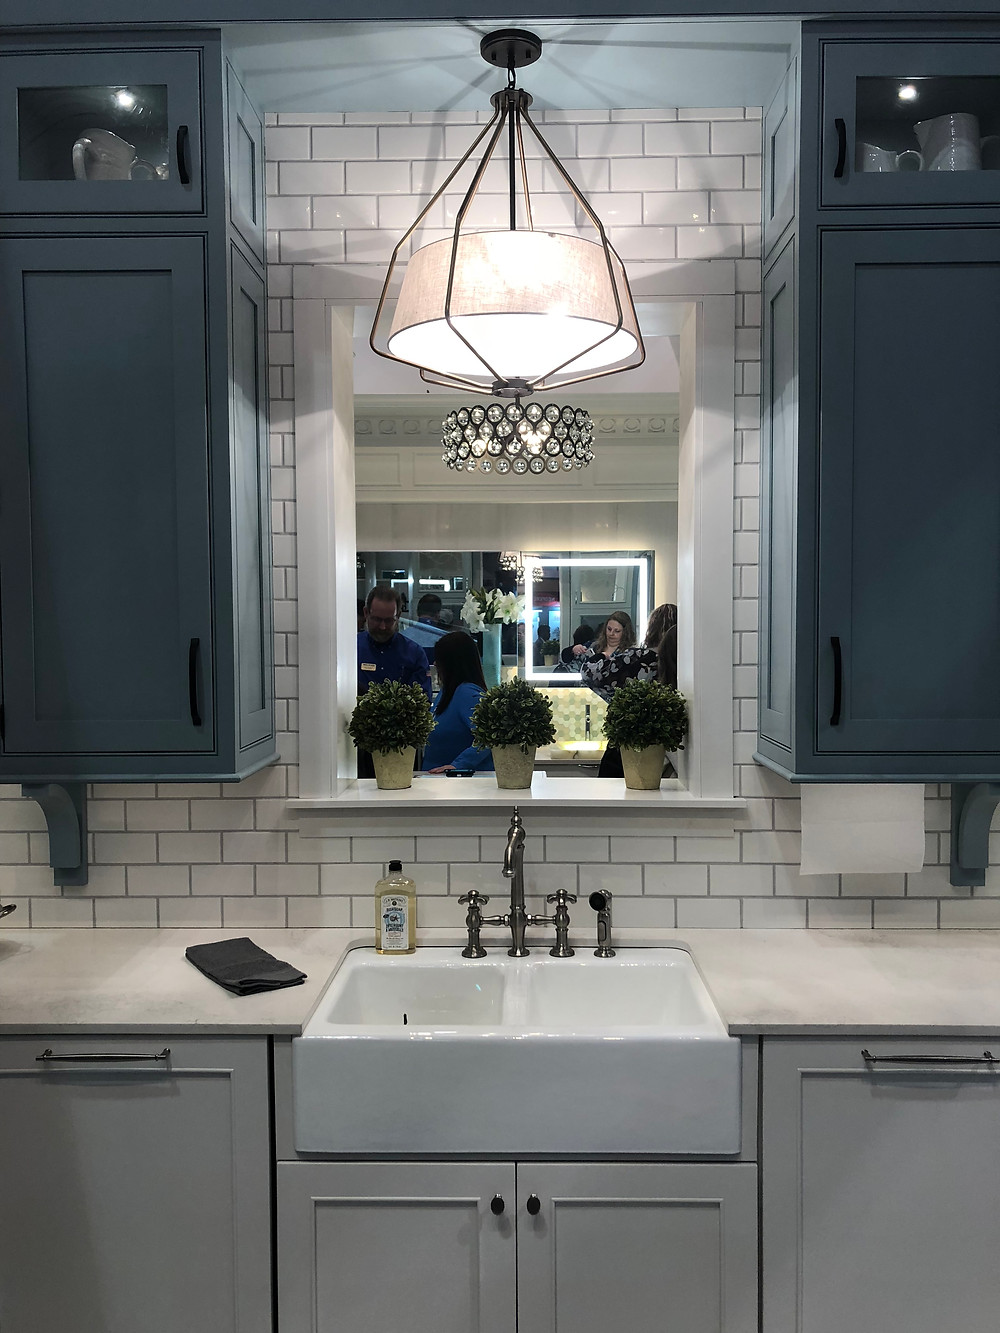 Blue and grey cabinetry farmhouse sink KBIS 2019